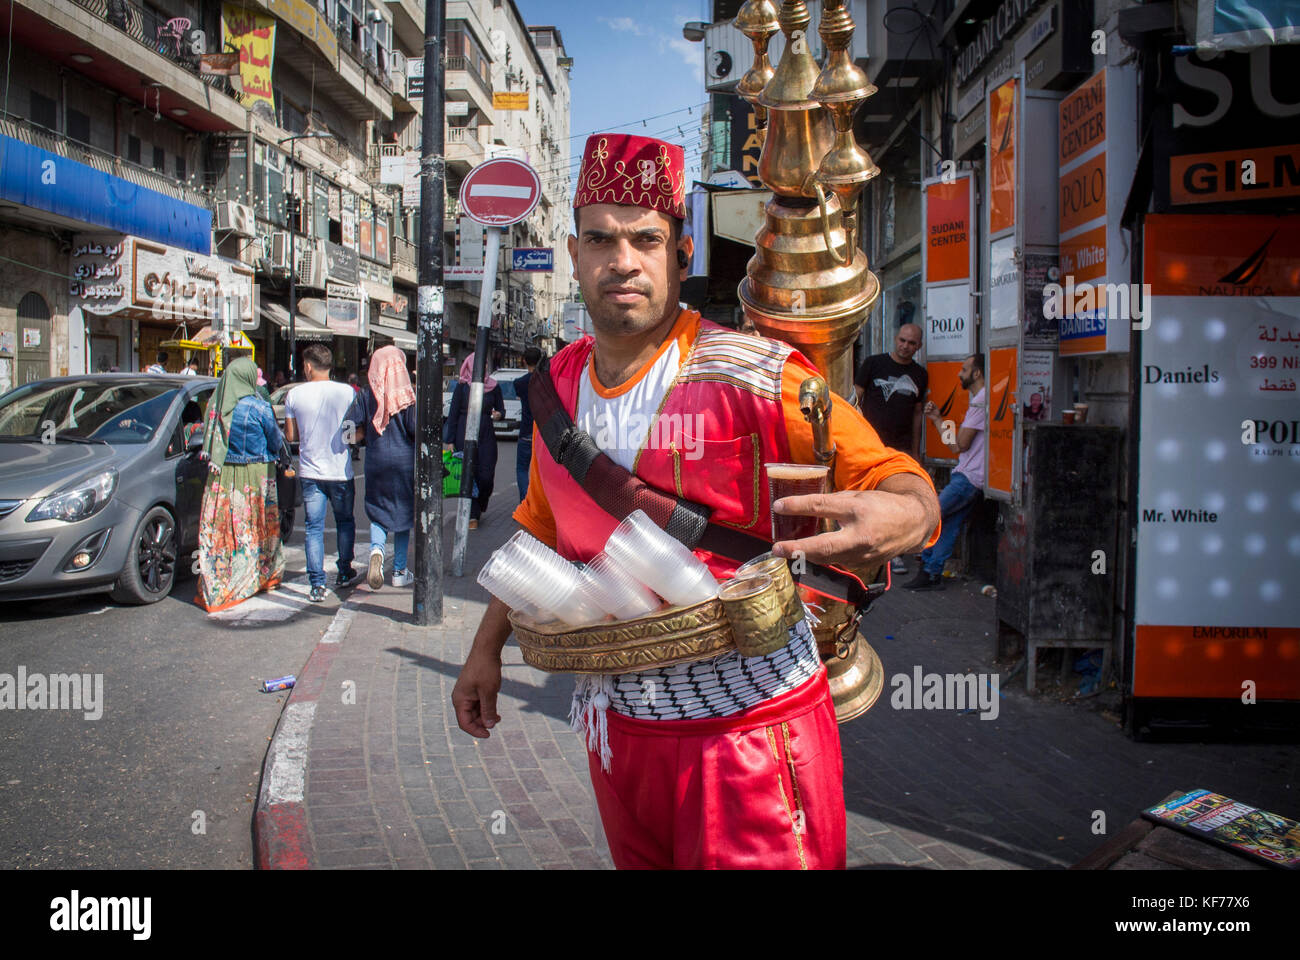 Serving Tea and Coffee  on the Street in Ramallah, Palestine. Stock Photo